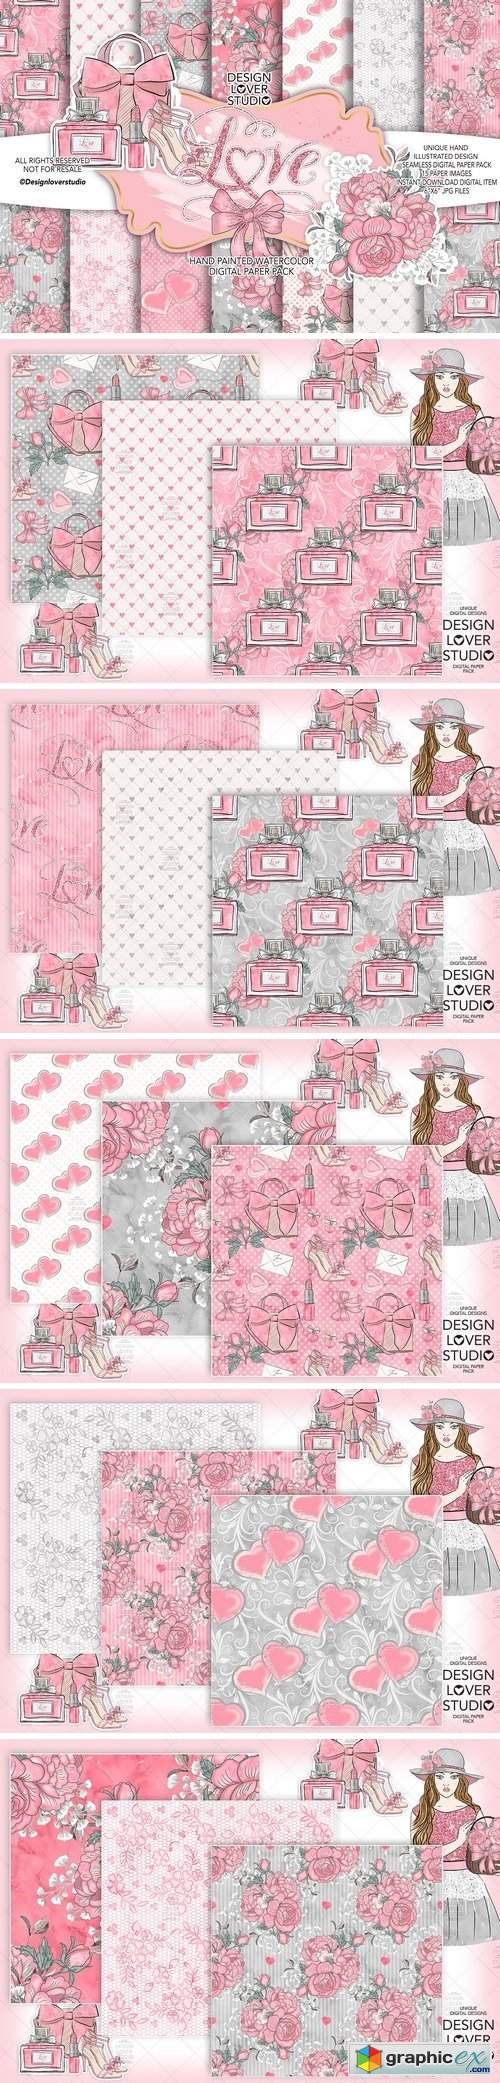 Loving Heart digital paper pack